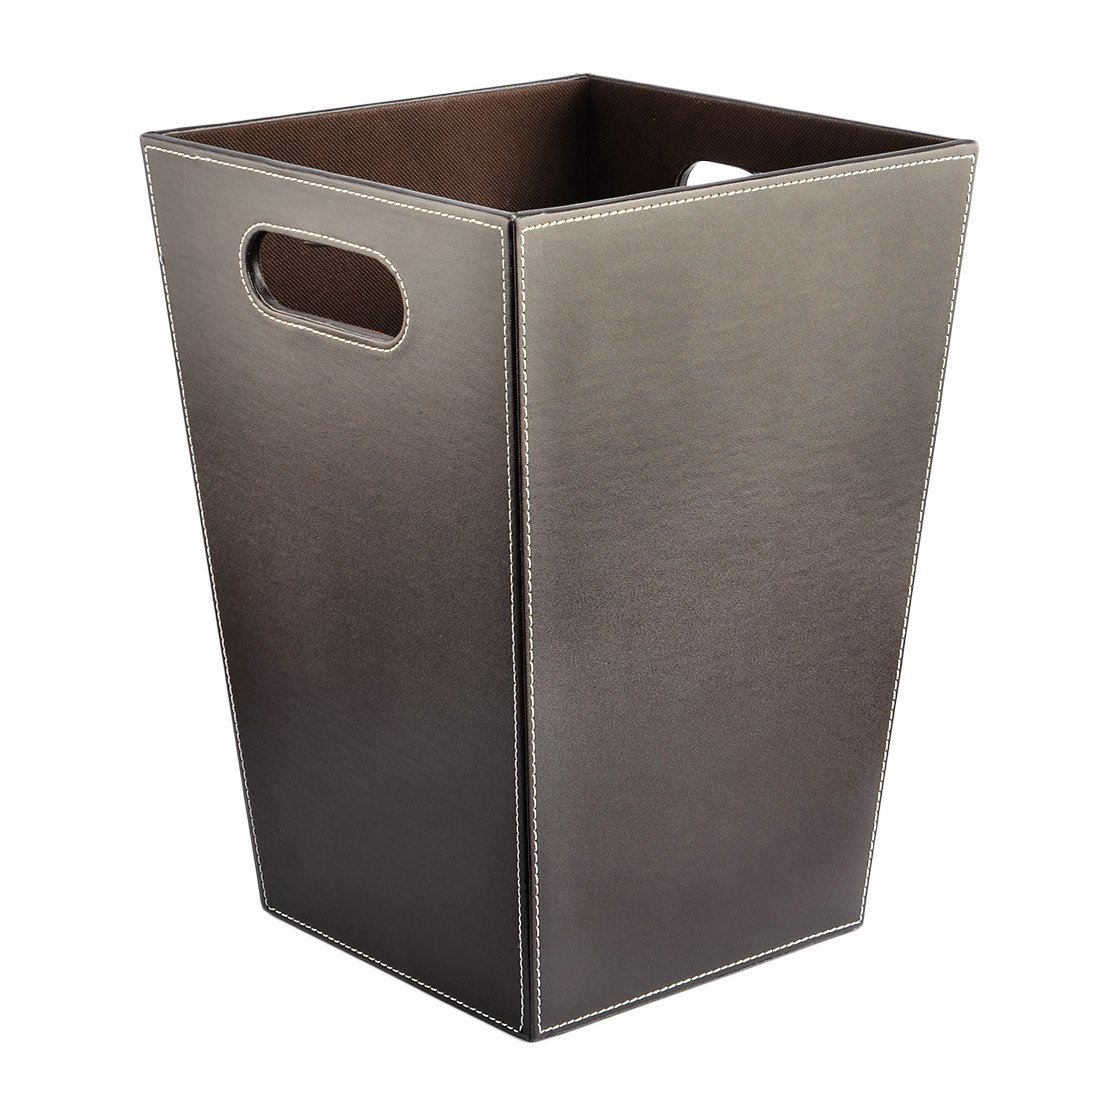 Incroyable Get Quotations · Wastebasket, Yamix Square Shape PU Wastebasket Trash Can Waste  Bin Waste Can Silver Waste Paper